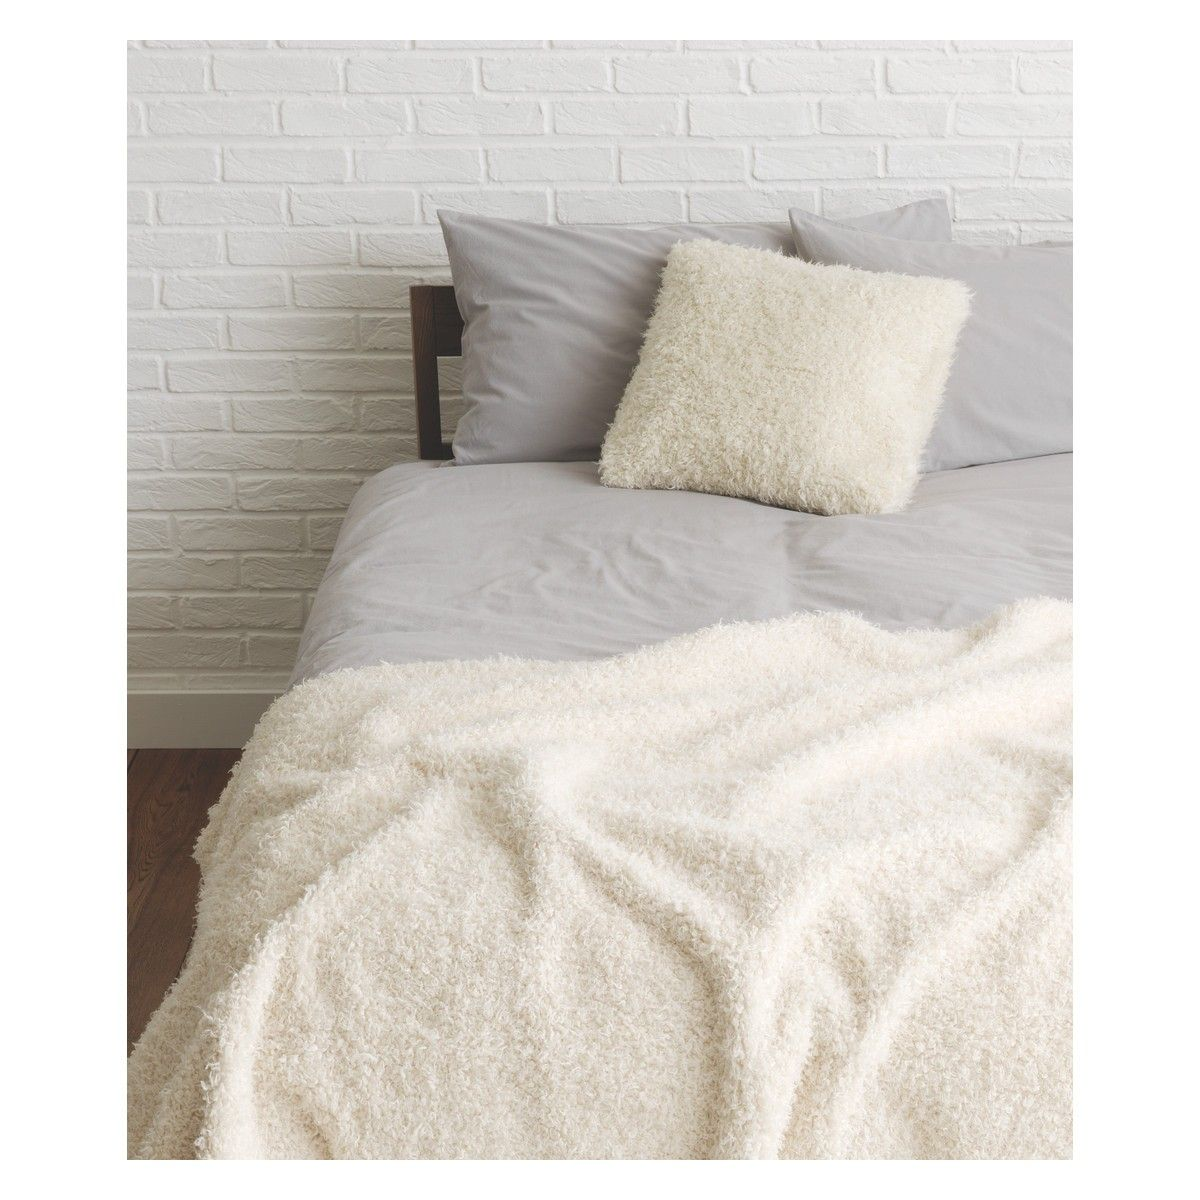 The Soft Texture And Stonewashed Finish Give Washed Stone Grey Kingsize Duvet Cover A Relaxed Look Feel Now At Habitat Uk